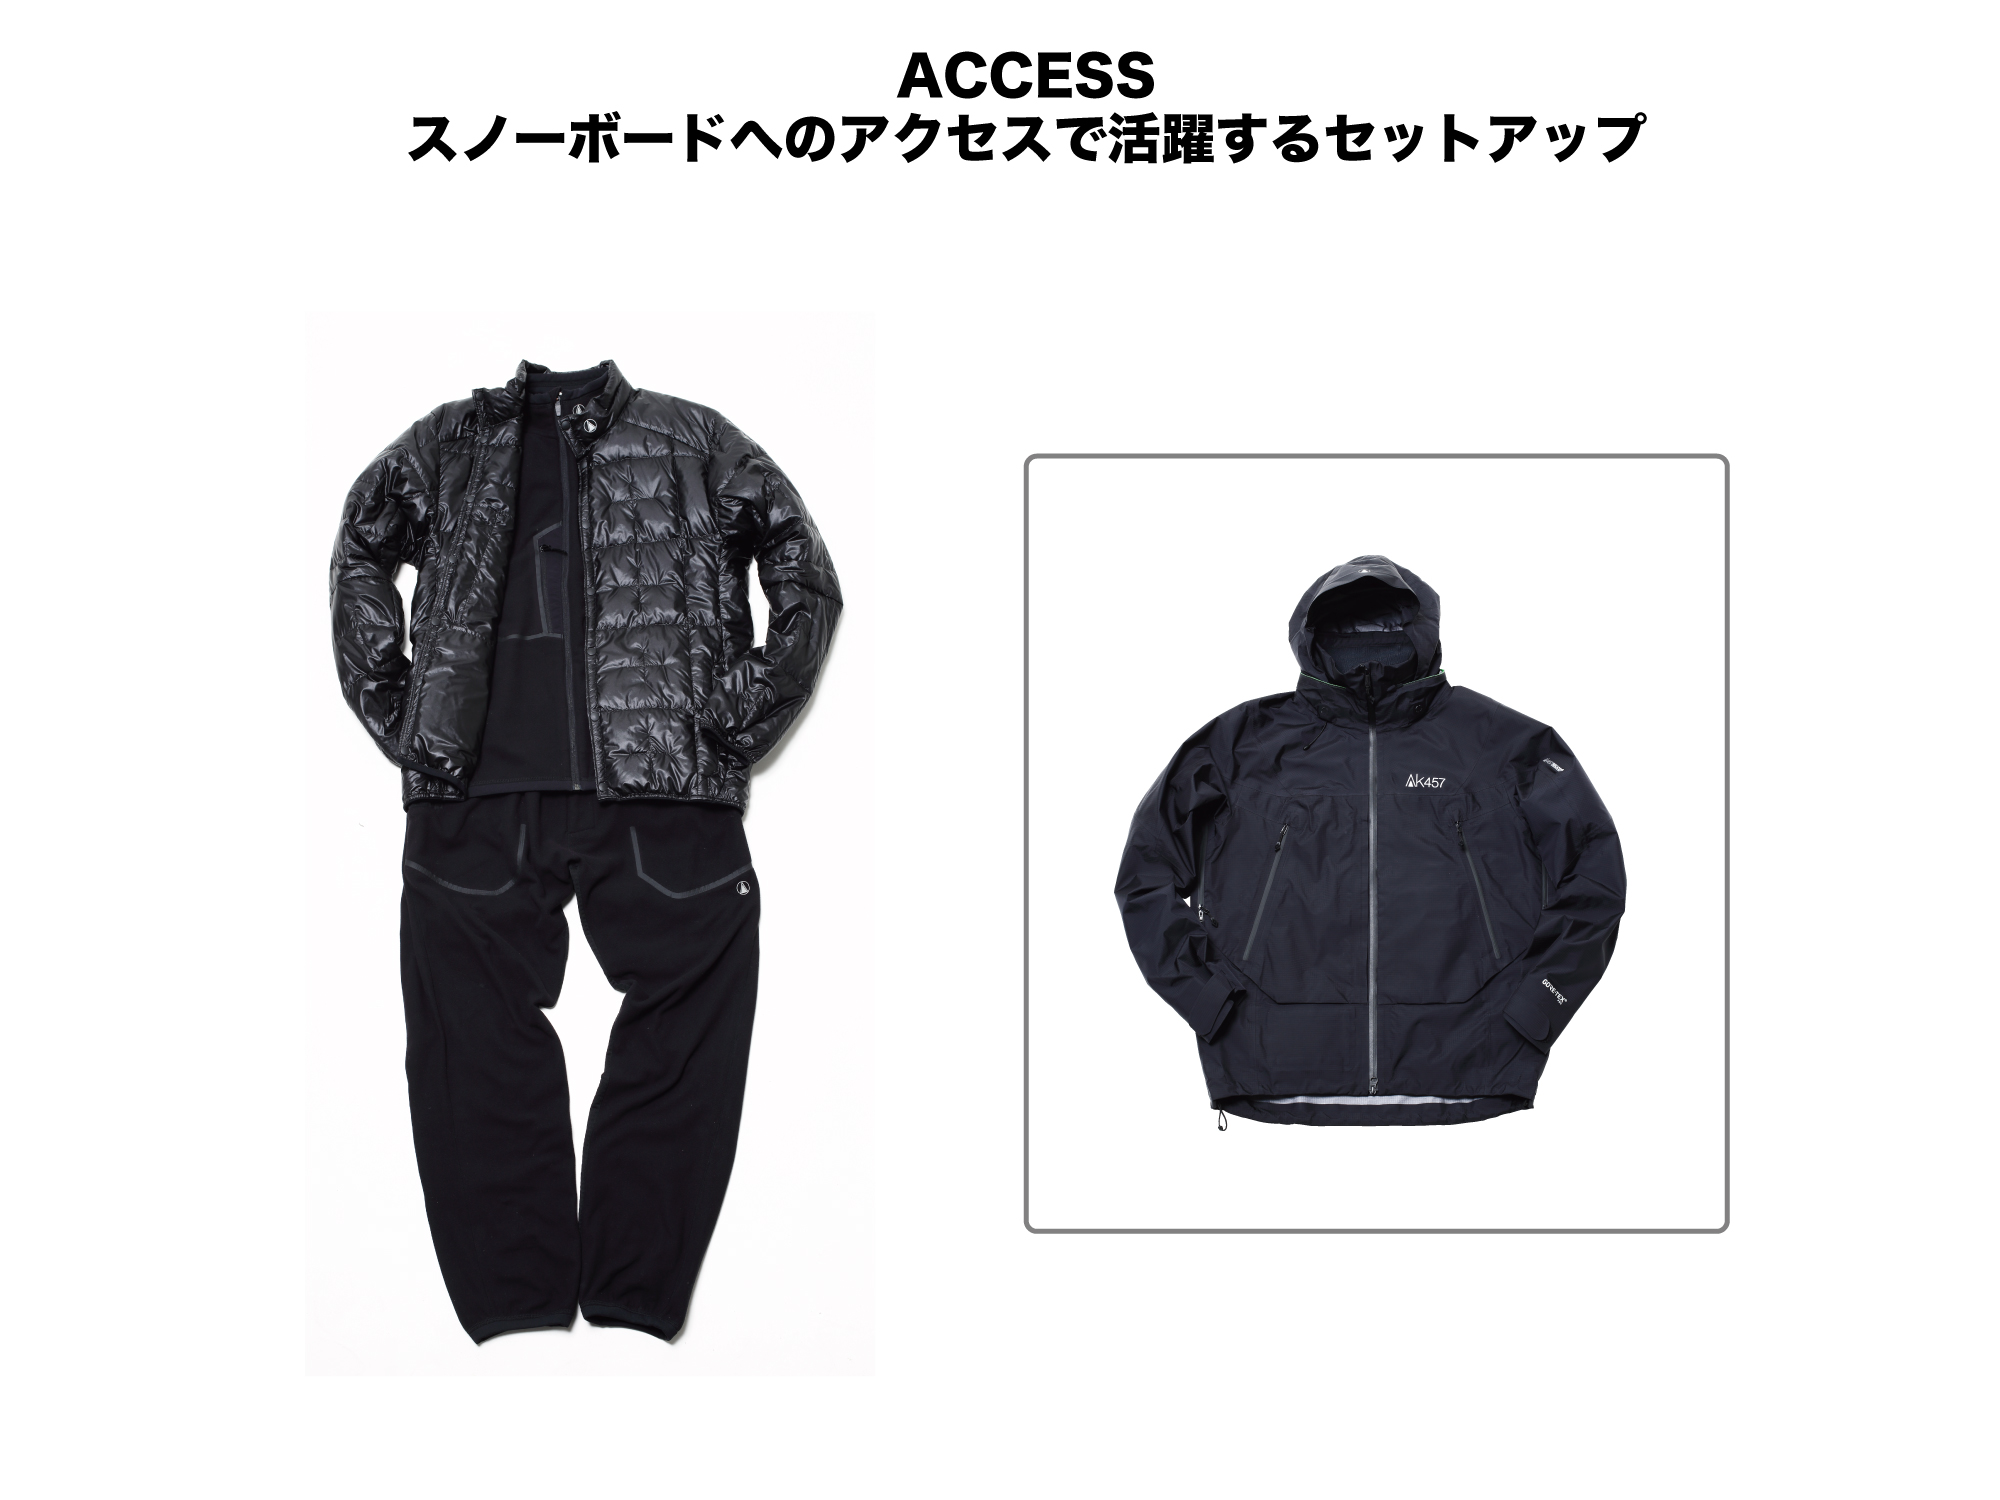 (上)(INNER)MICRO FLEECE JACKET:¥34,000 (OUTER)PACKABLE DOWN JACKET:¥46,000/LW JACKET:¥79,000 (下)AK457 MICRO FLEECE PANT:¥34,000